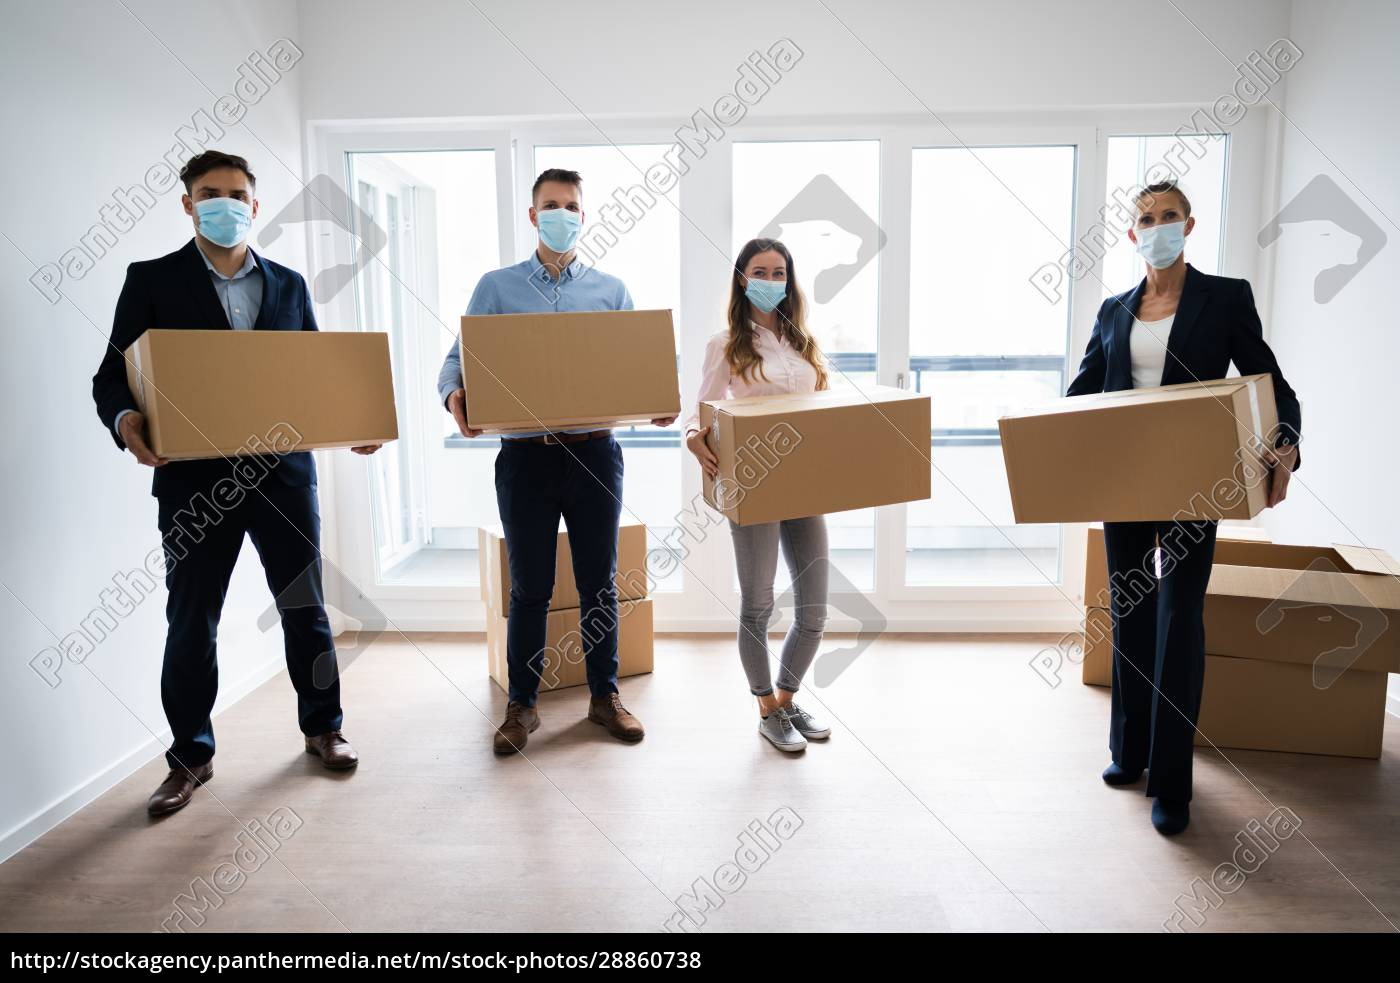 office, relocation., executives, moving, cardboard, boxes - 28860738